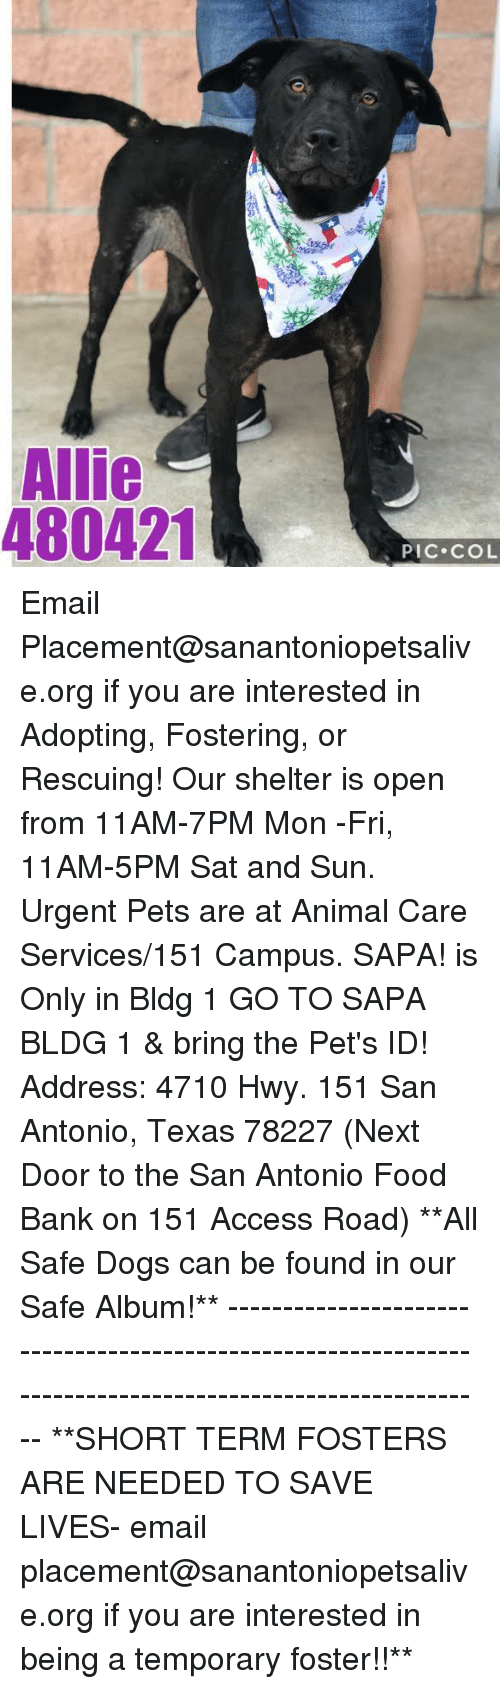 Dogs, Food, and Memes: Allie  480421  PIC COL Email Placement@sanantoniopetsalive.org if you are interested in Adopting, Fostering, or Rescuing!  Our shelter is open from 11AM-7PM Mon -Fri, 11AM-5PM Sat and Sun.  Urgent Pets are at Animal Care Services/151 Campus. SAPA! is Only in Bldg 1 GO TO SAPA BLDG 1 & bring the Pet's ID! Address: 4710 Hwy. 151 San Antonio, Texas 78227 (Next Door to the San Antonio Food Bank on 151 Access Road)  **All Safe Dogs can be found in our Safe Album!** ---------------------------------------------------------------------------------------------------------- **SHORT TERM FOSTERS ARE NEEDED TO SAVE LIVES- email placement@sanantoniopetsalive.org if you are interested in being a temporary foster!!**